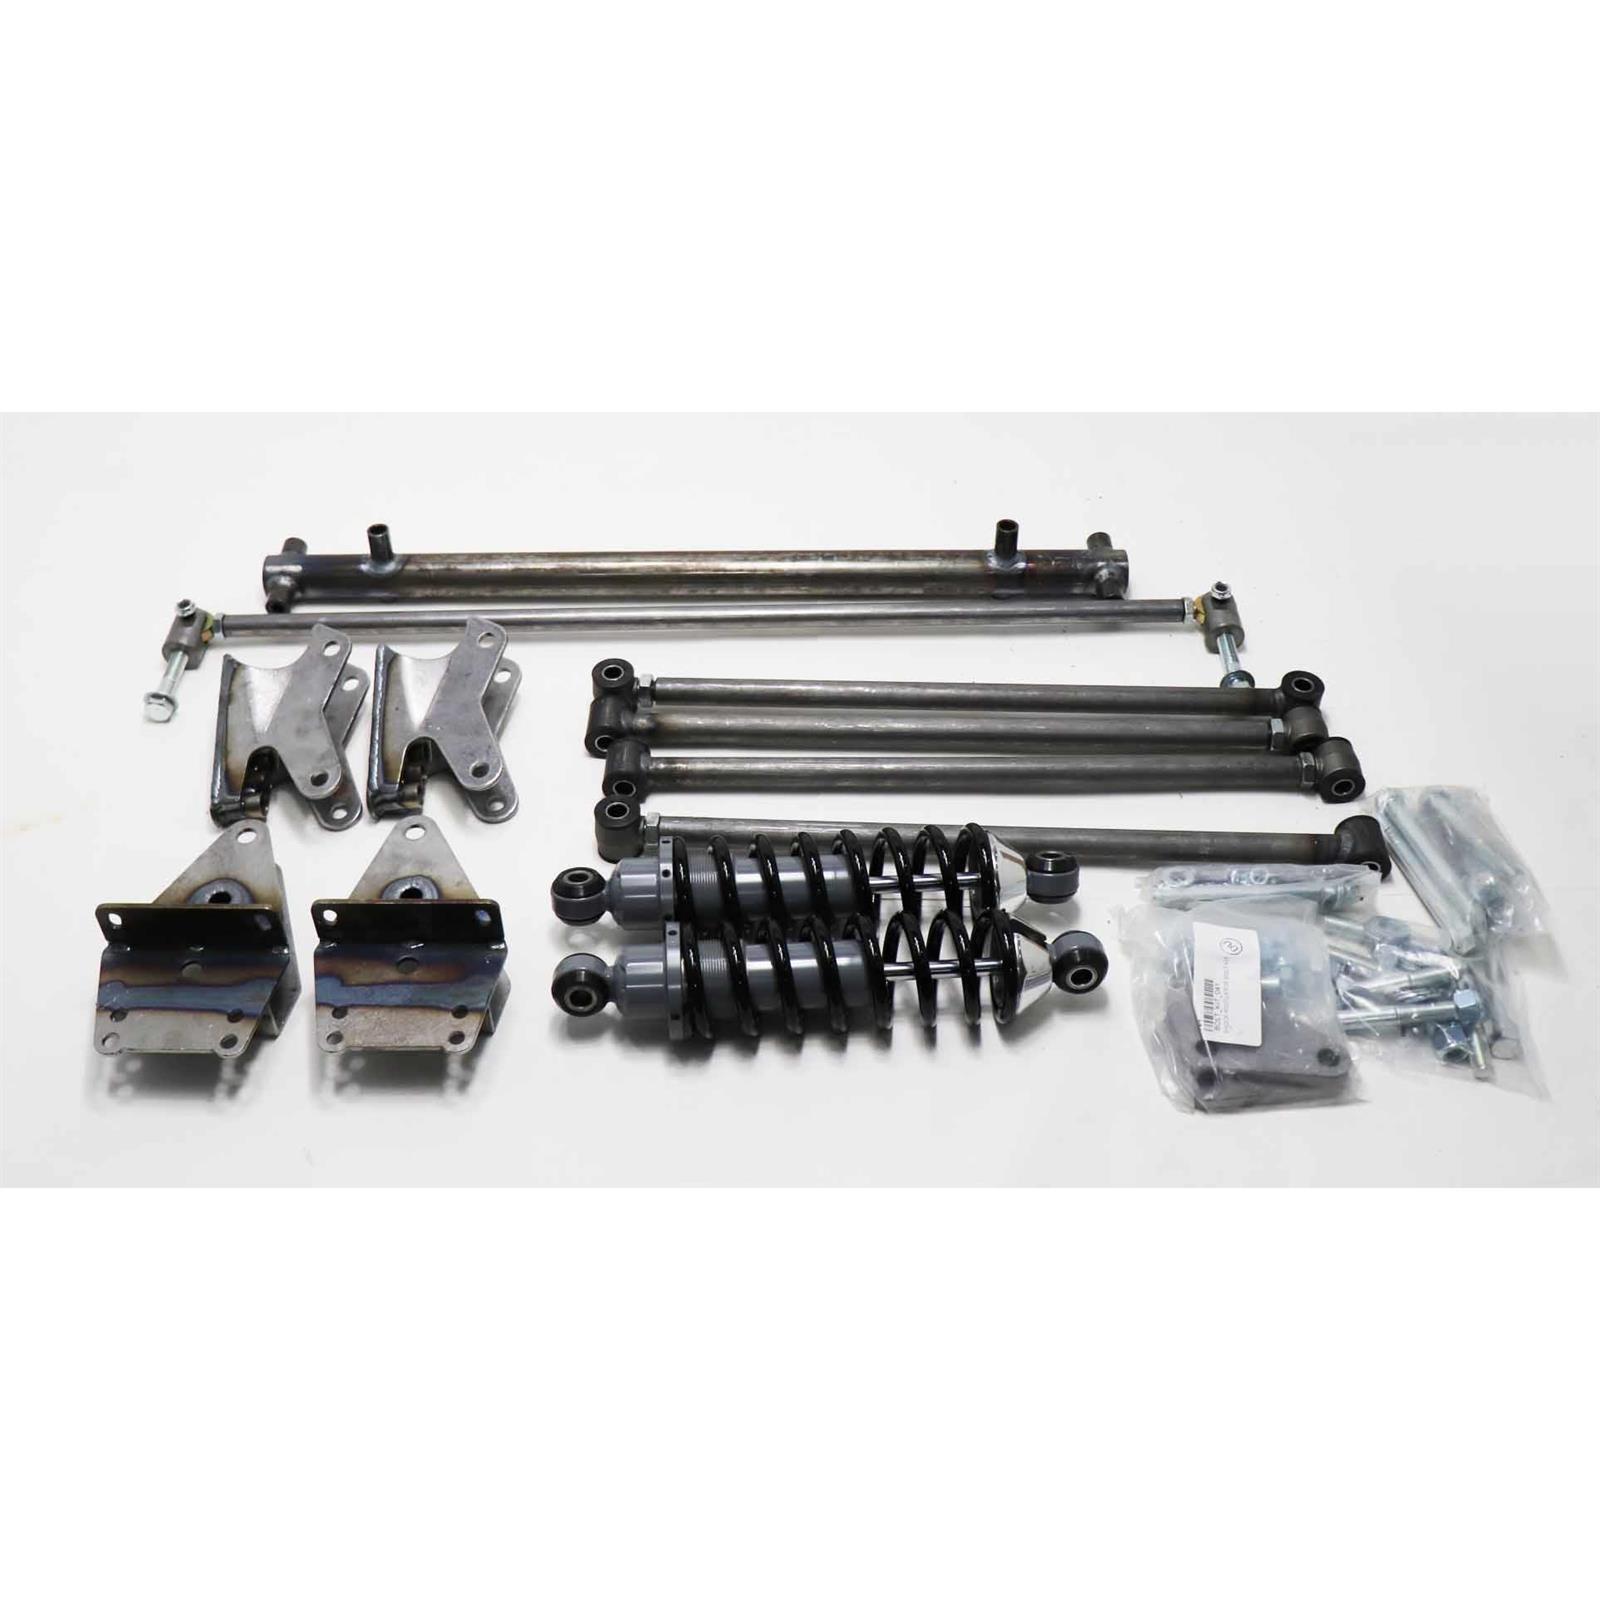 Chevy Truck 1955-59 Adjustable Triangulated Four 4-Link Suspension Kit V8 Pickup